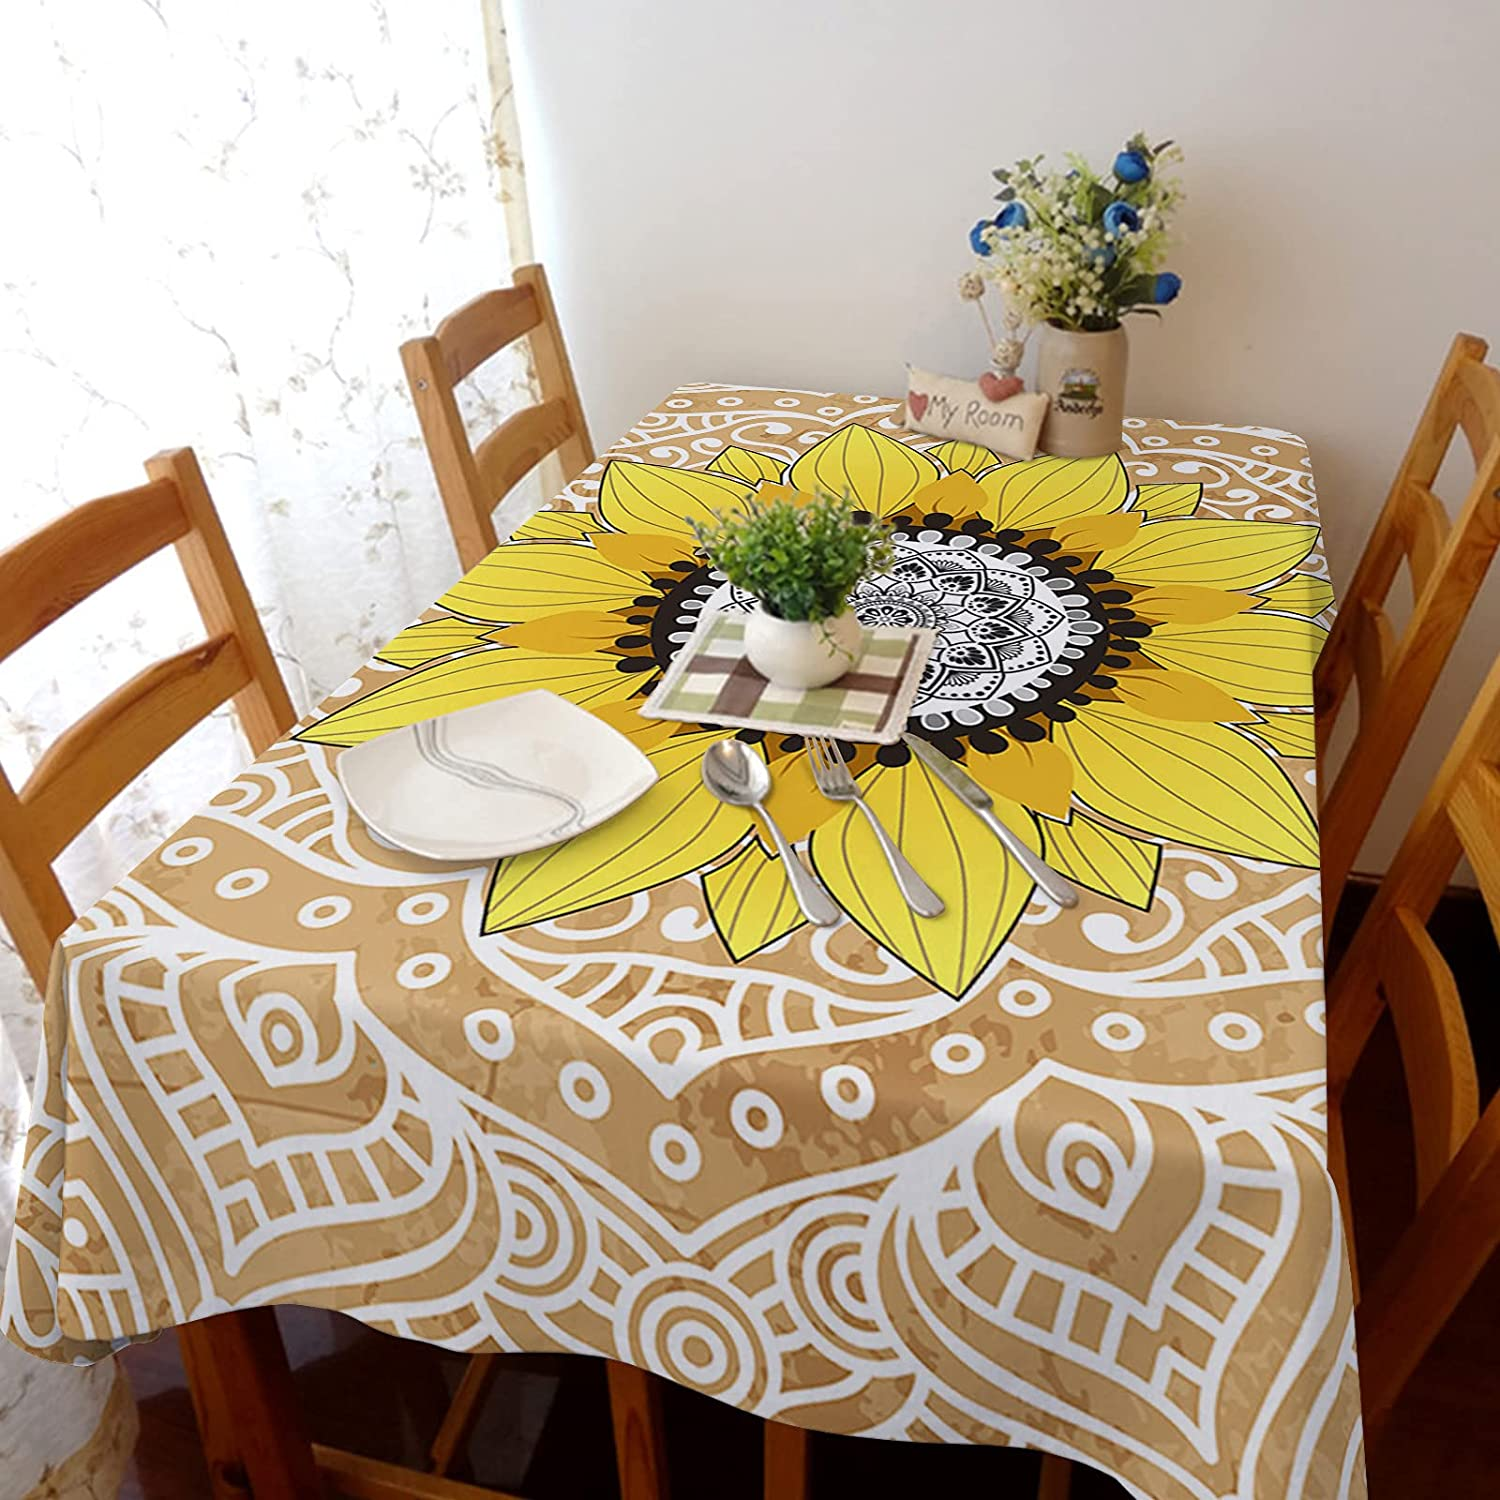 TH XHome Tablecloth Linen Burlap Limited price sale Sunflow Weights Soldering Fabric Mandala